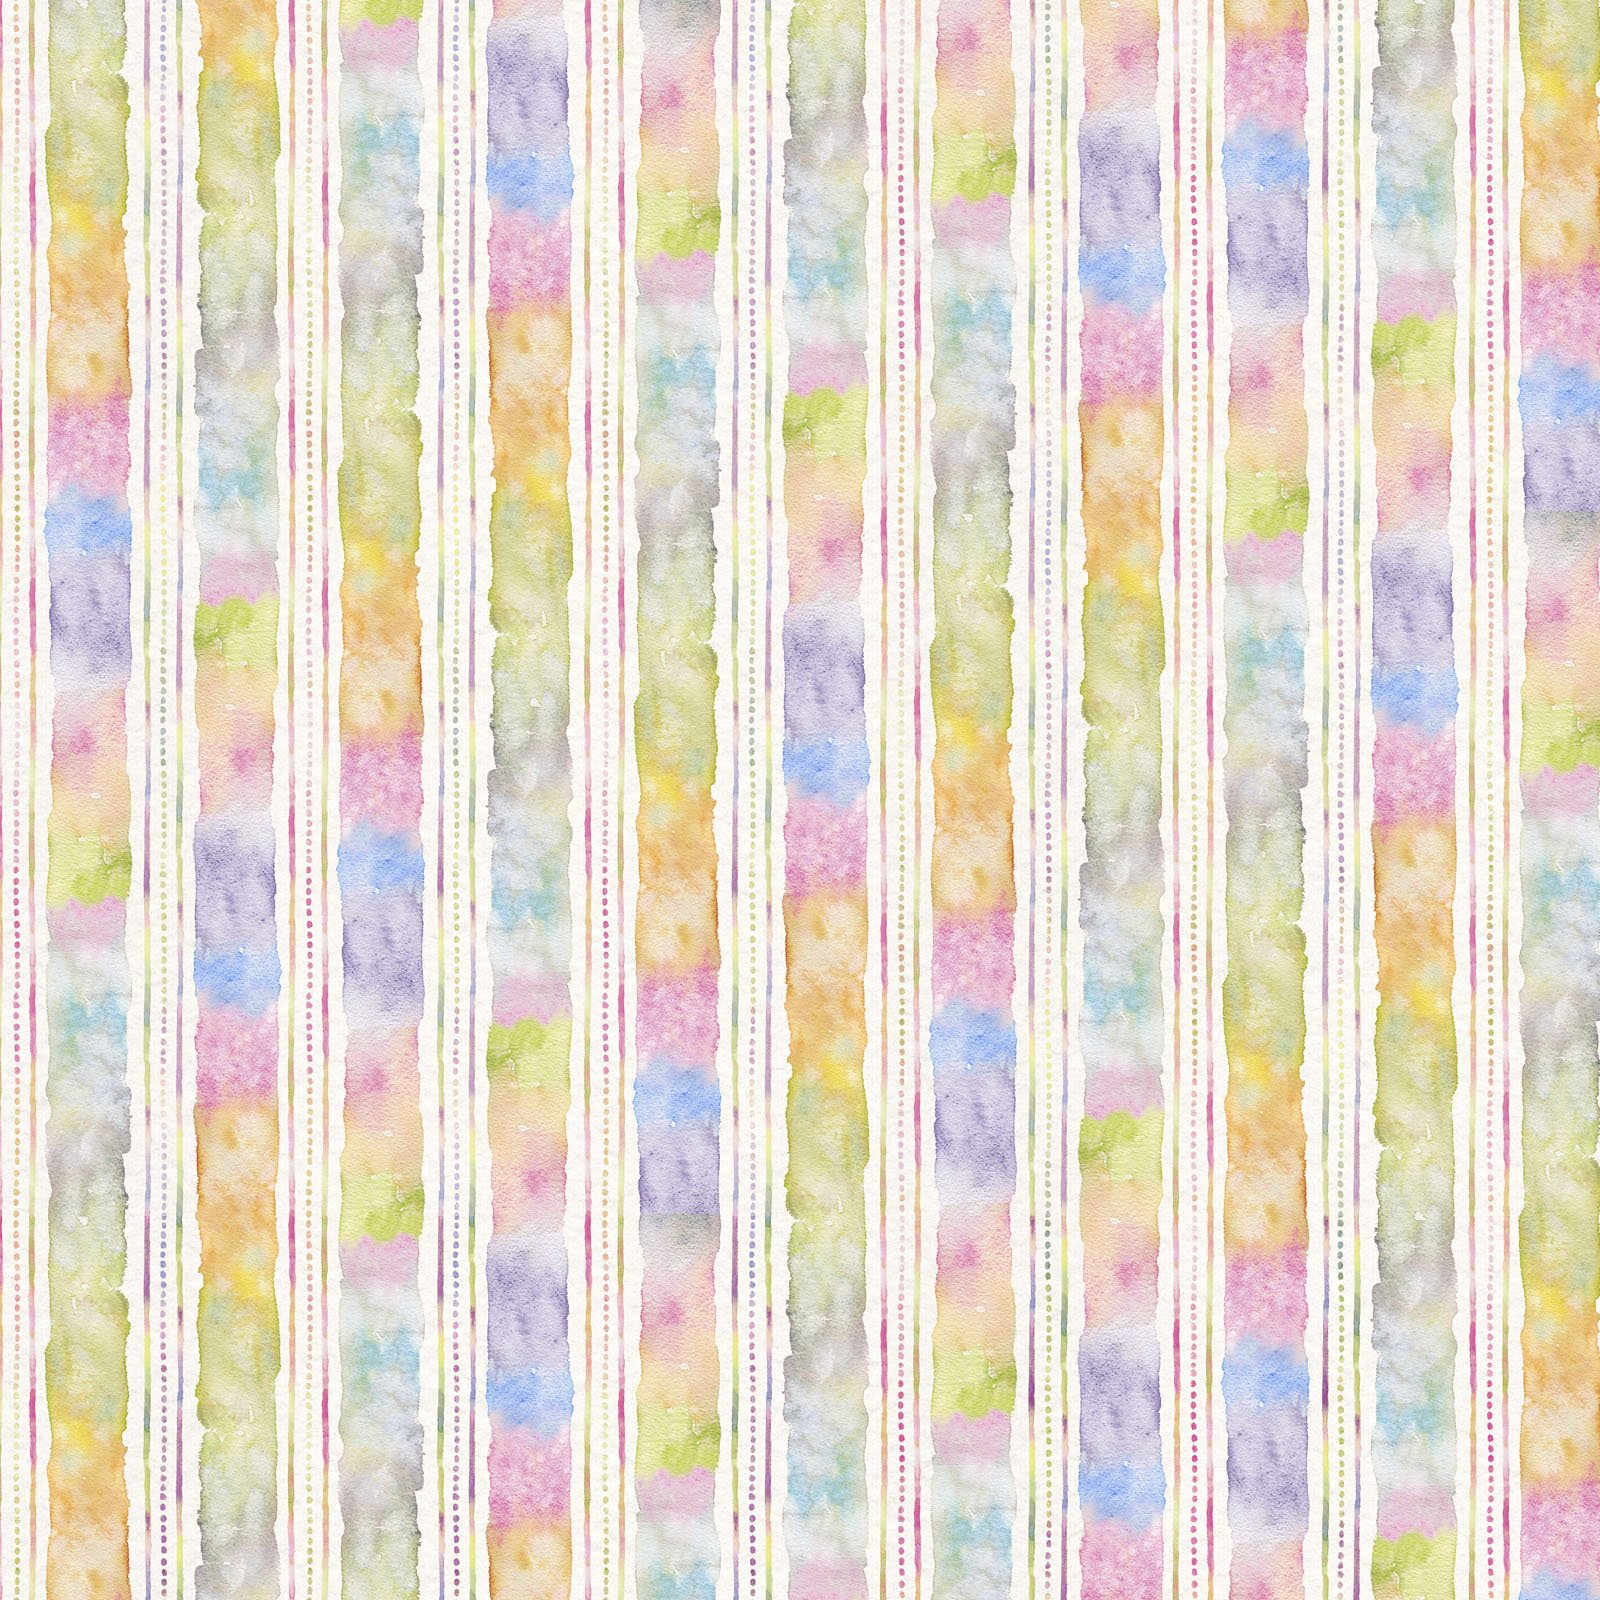 FLFE-4475 MU - FLOWERS&FEATHERS BY SILLIER THAN SALLY WATERCOLOR STRIPE MULTI - ARRIVING IN JULY 2021